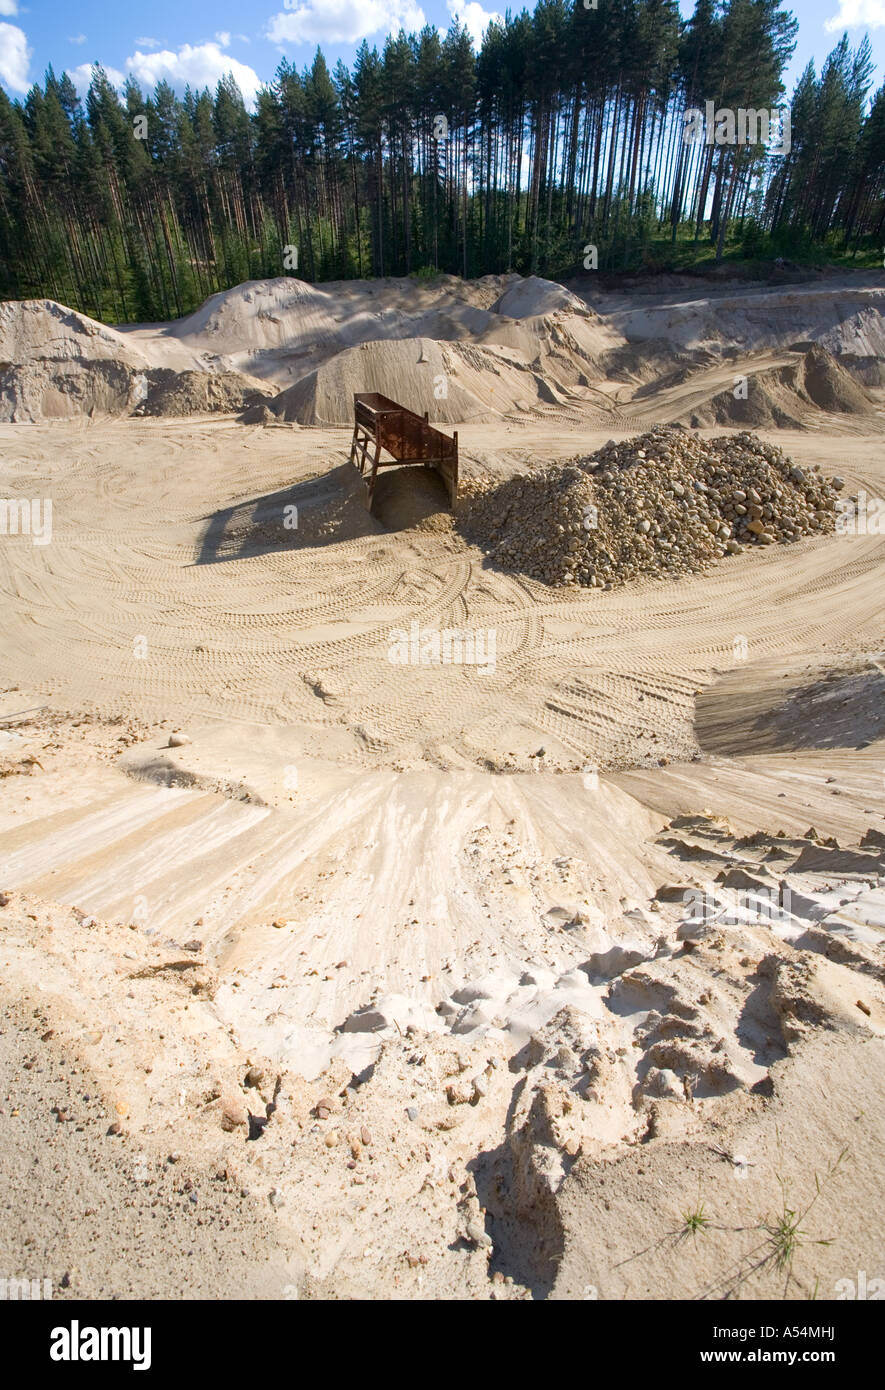 Wall of a gravel pit on a sandy ridge , Finland - Stock Image